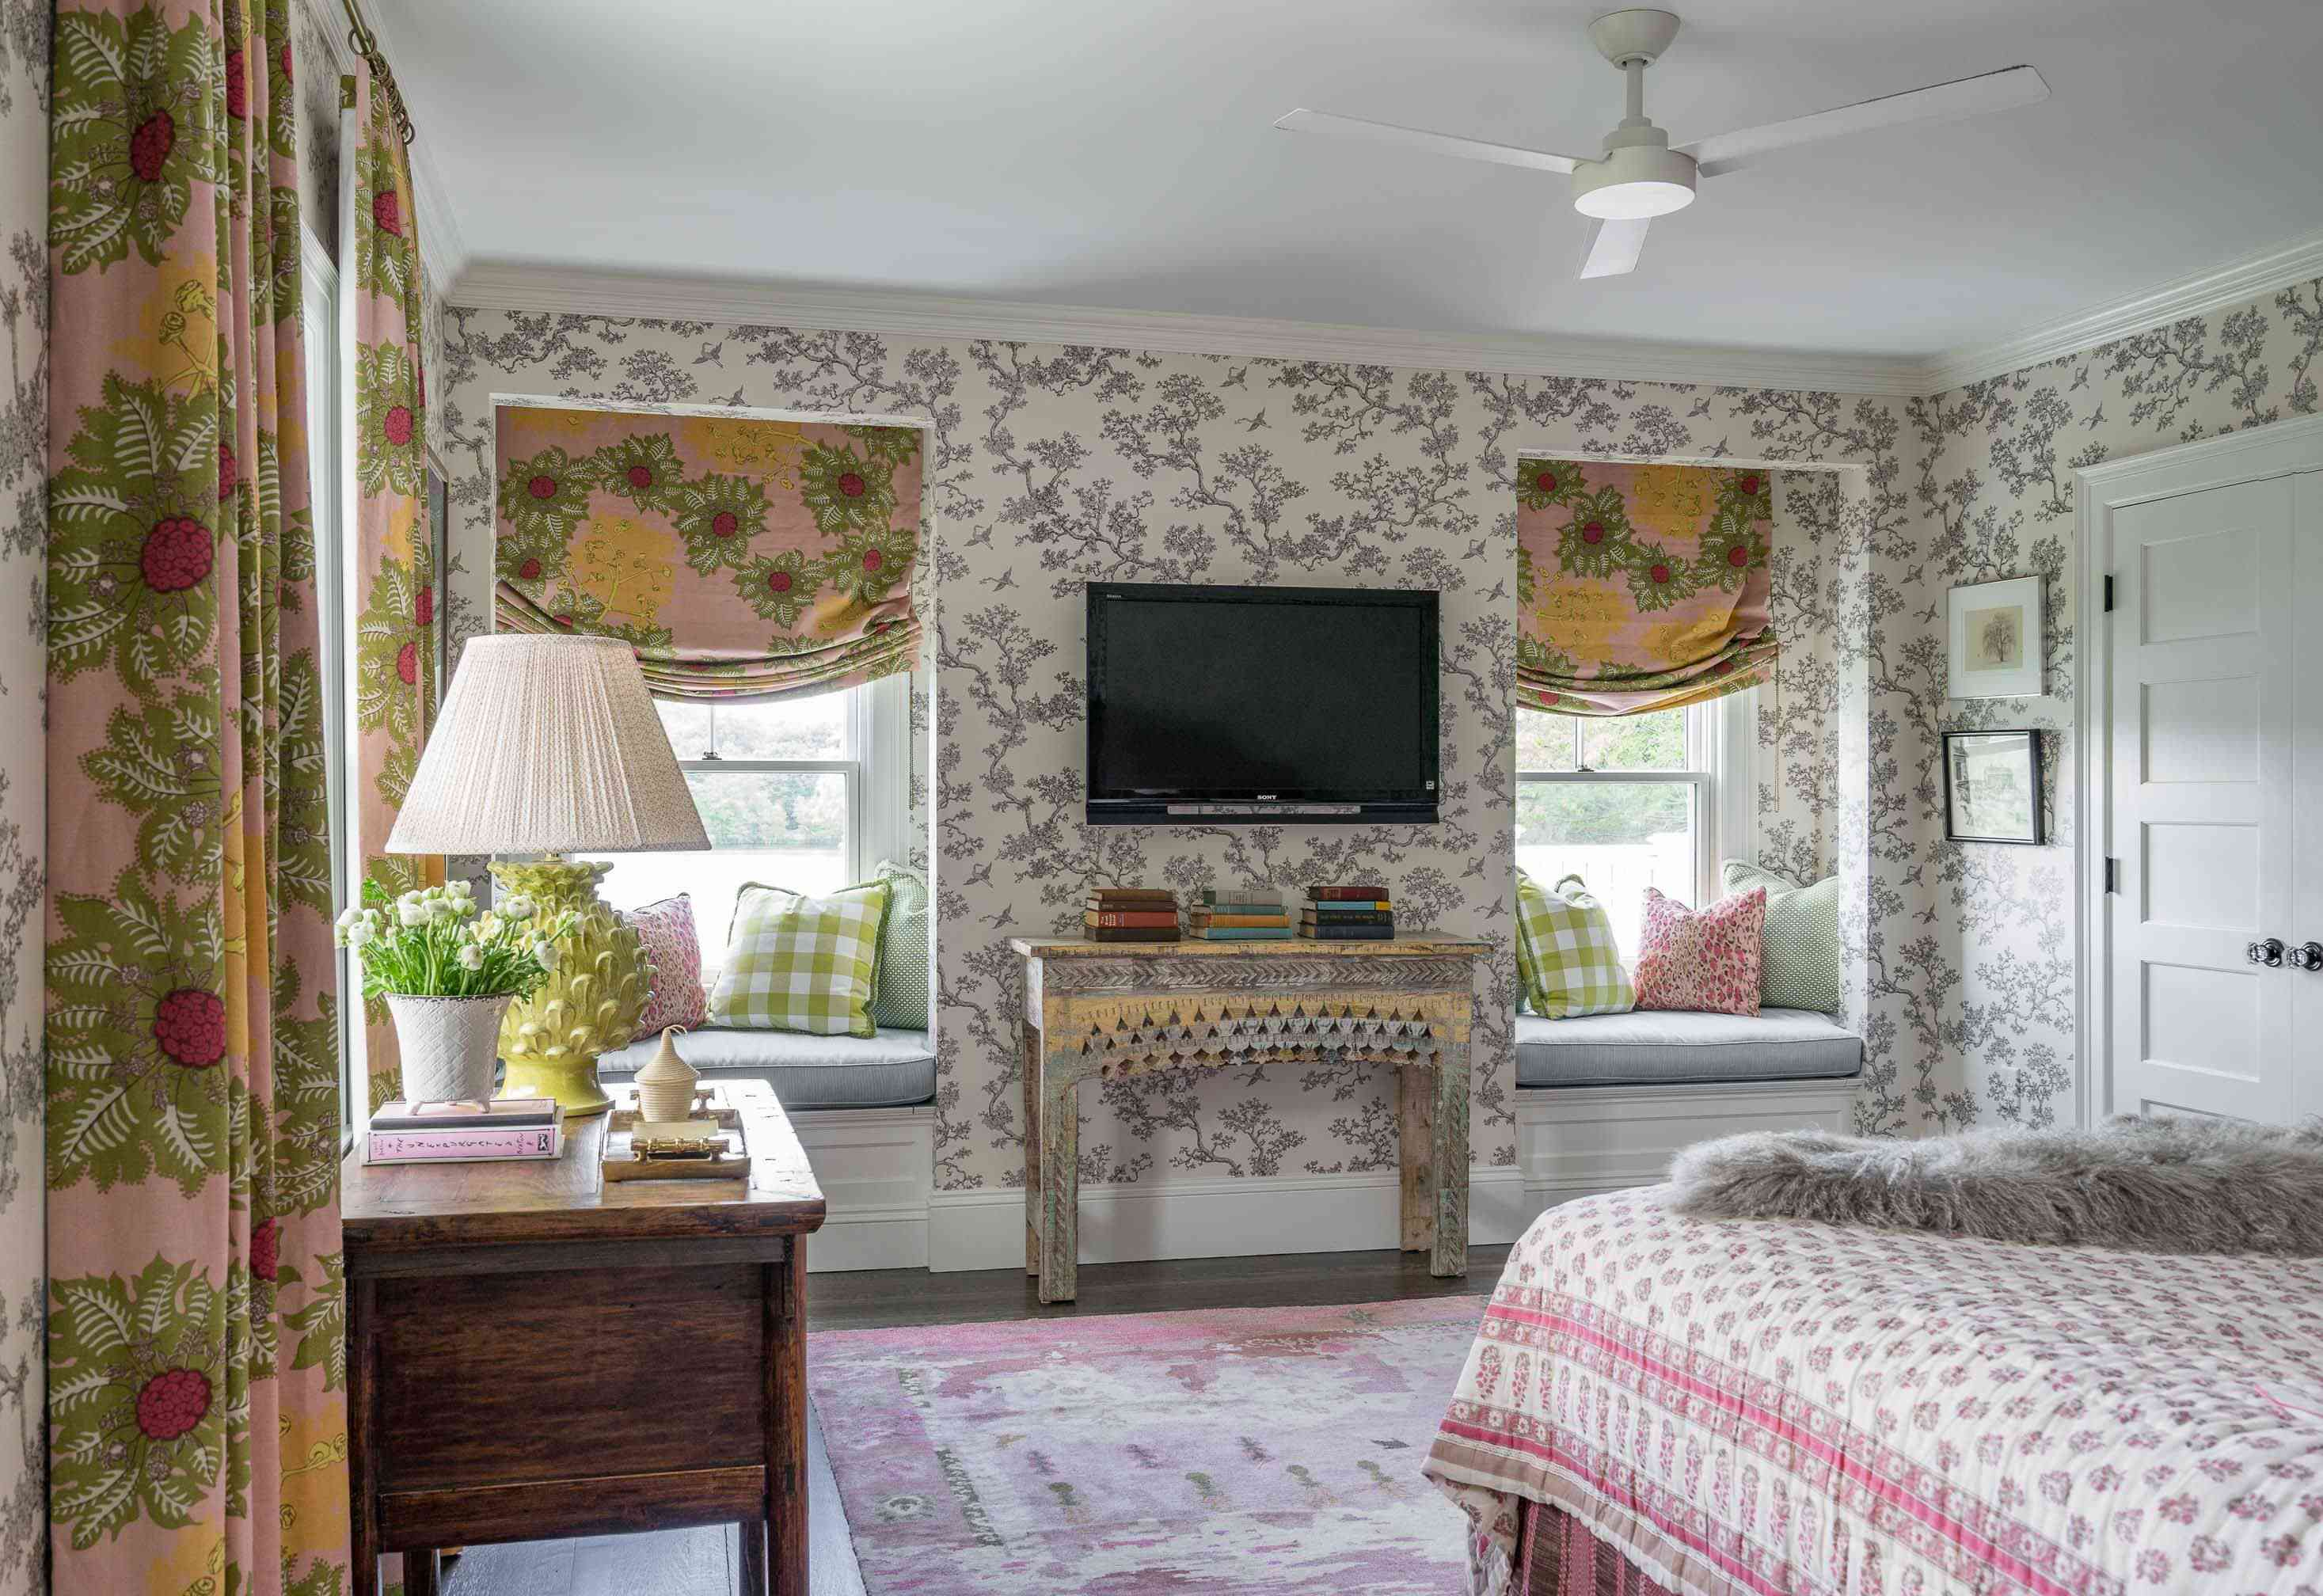 floral wallpaper adorns the walls of this cottagecore bedroom with floral window treatments, fresh flowers, and a floral quilt